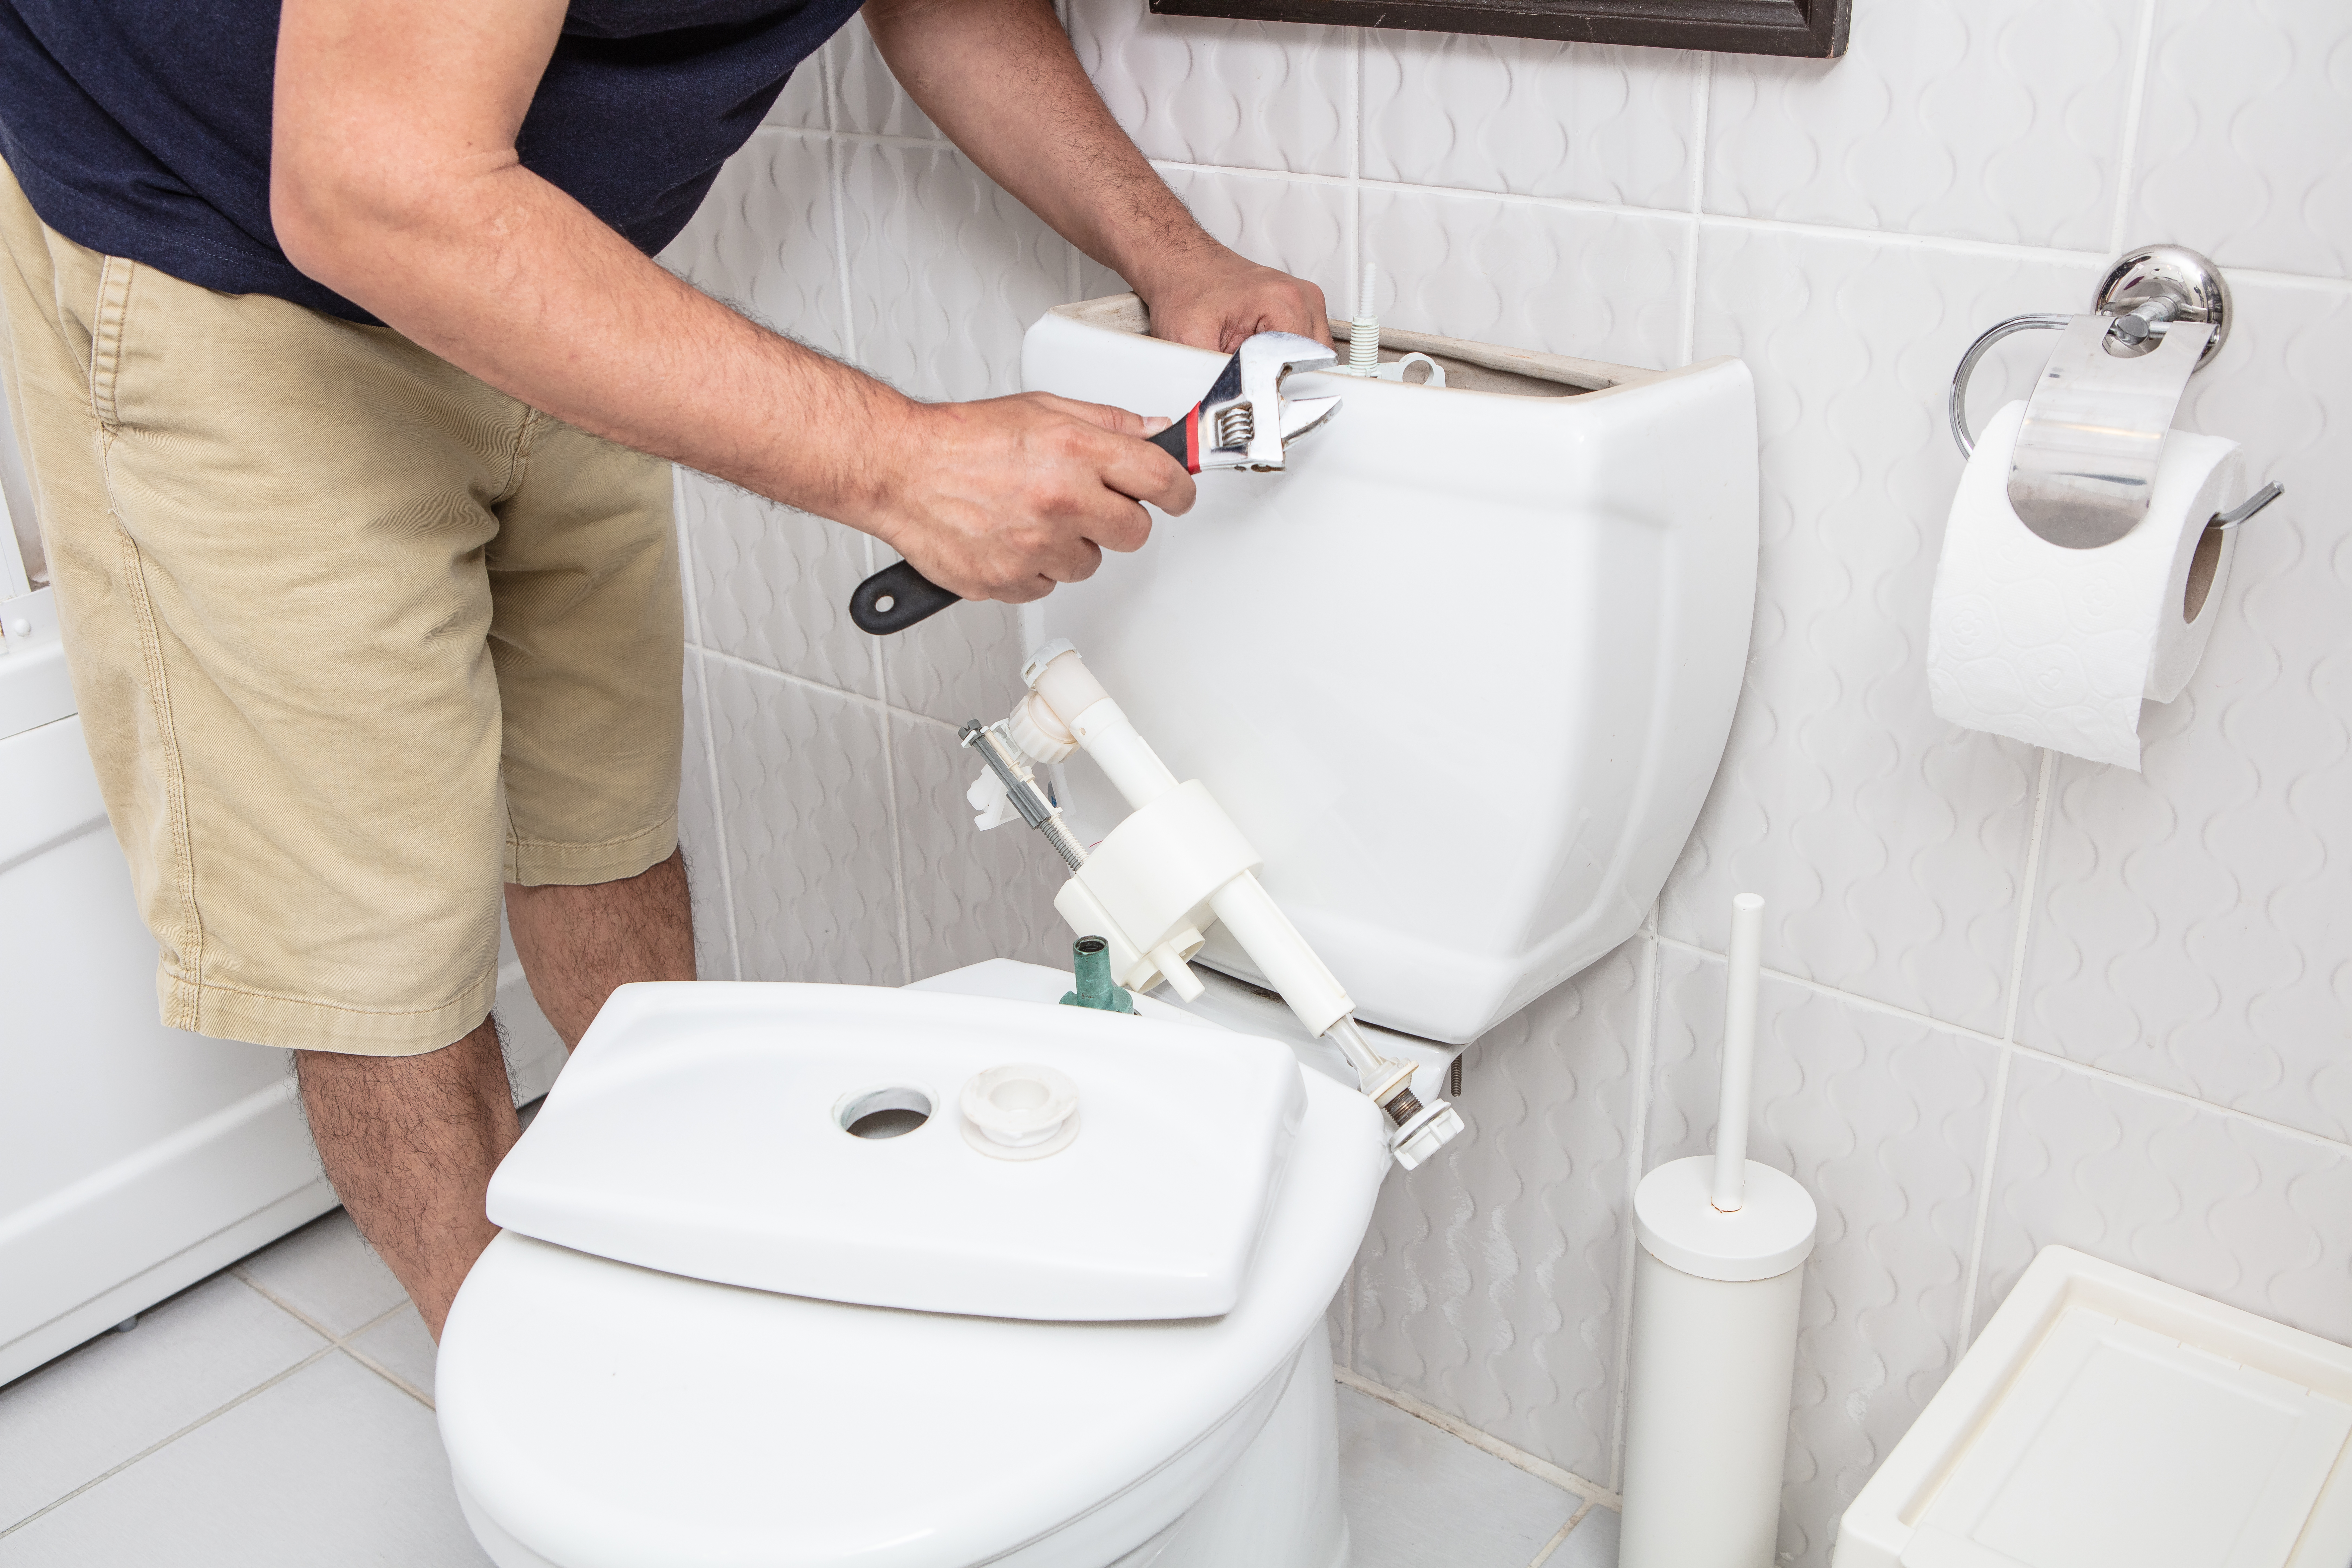 How to Plumb a Toilet From Start to Pipe | Home Guides | SF Gate